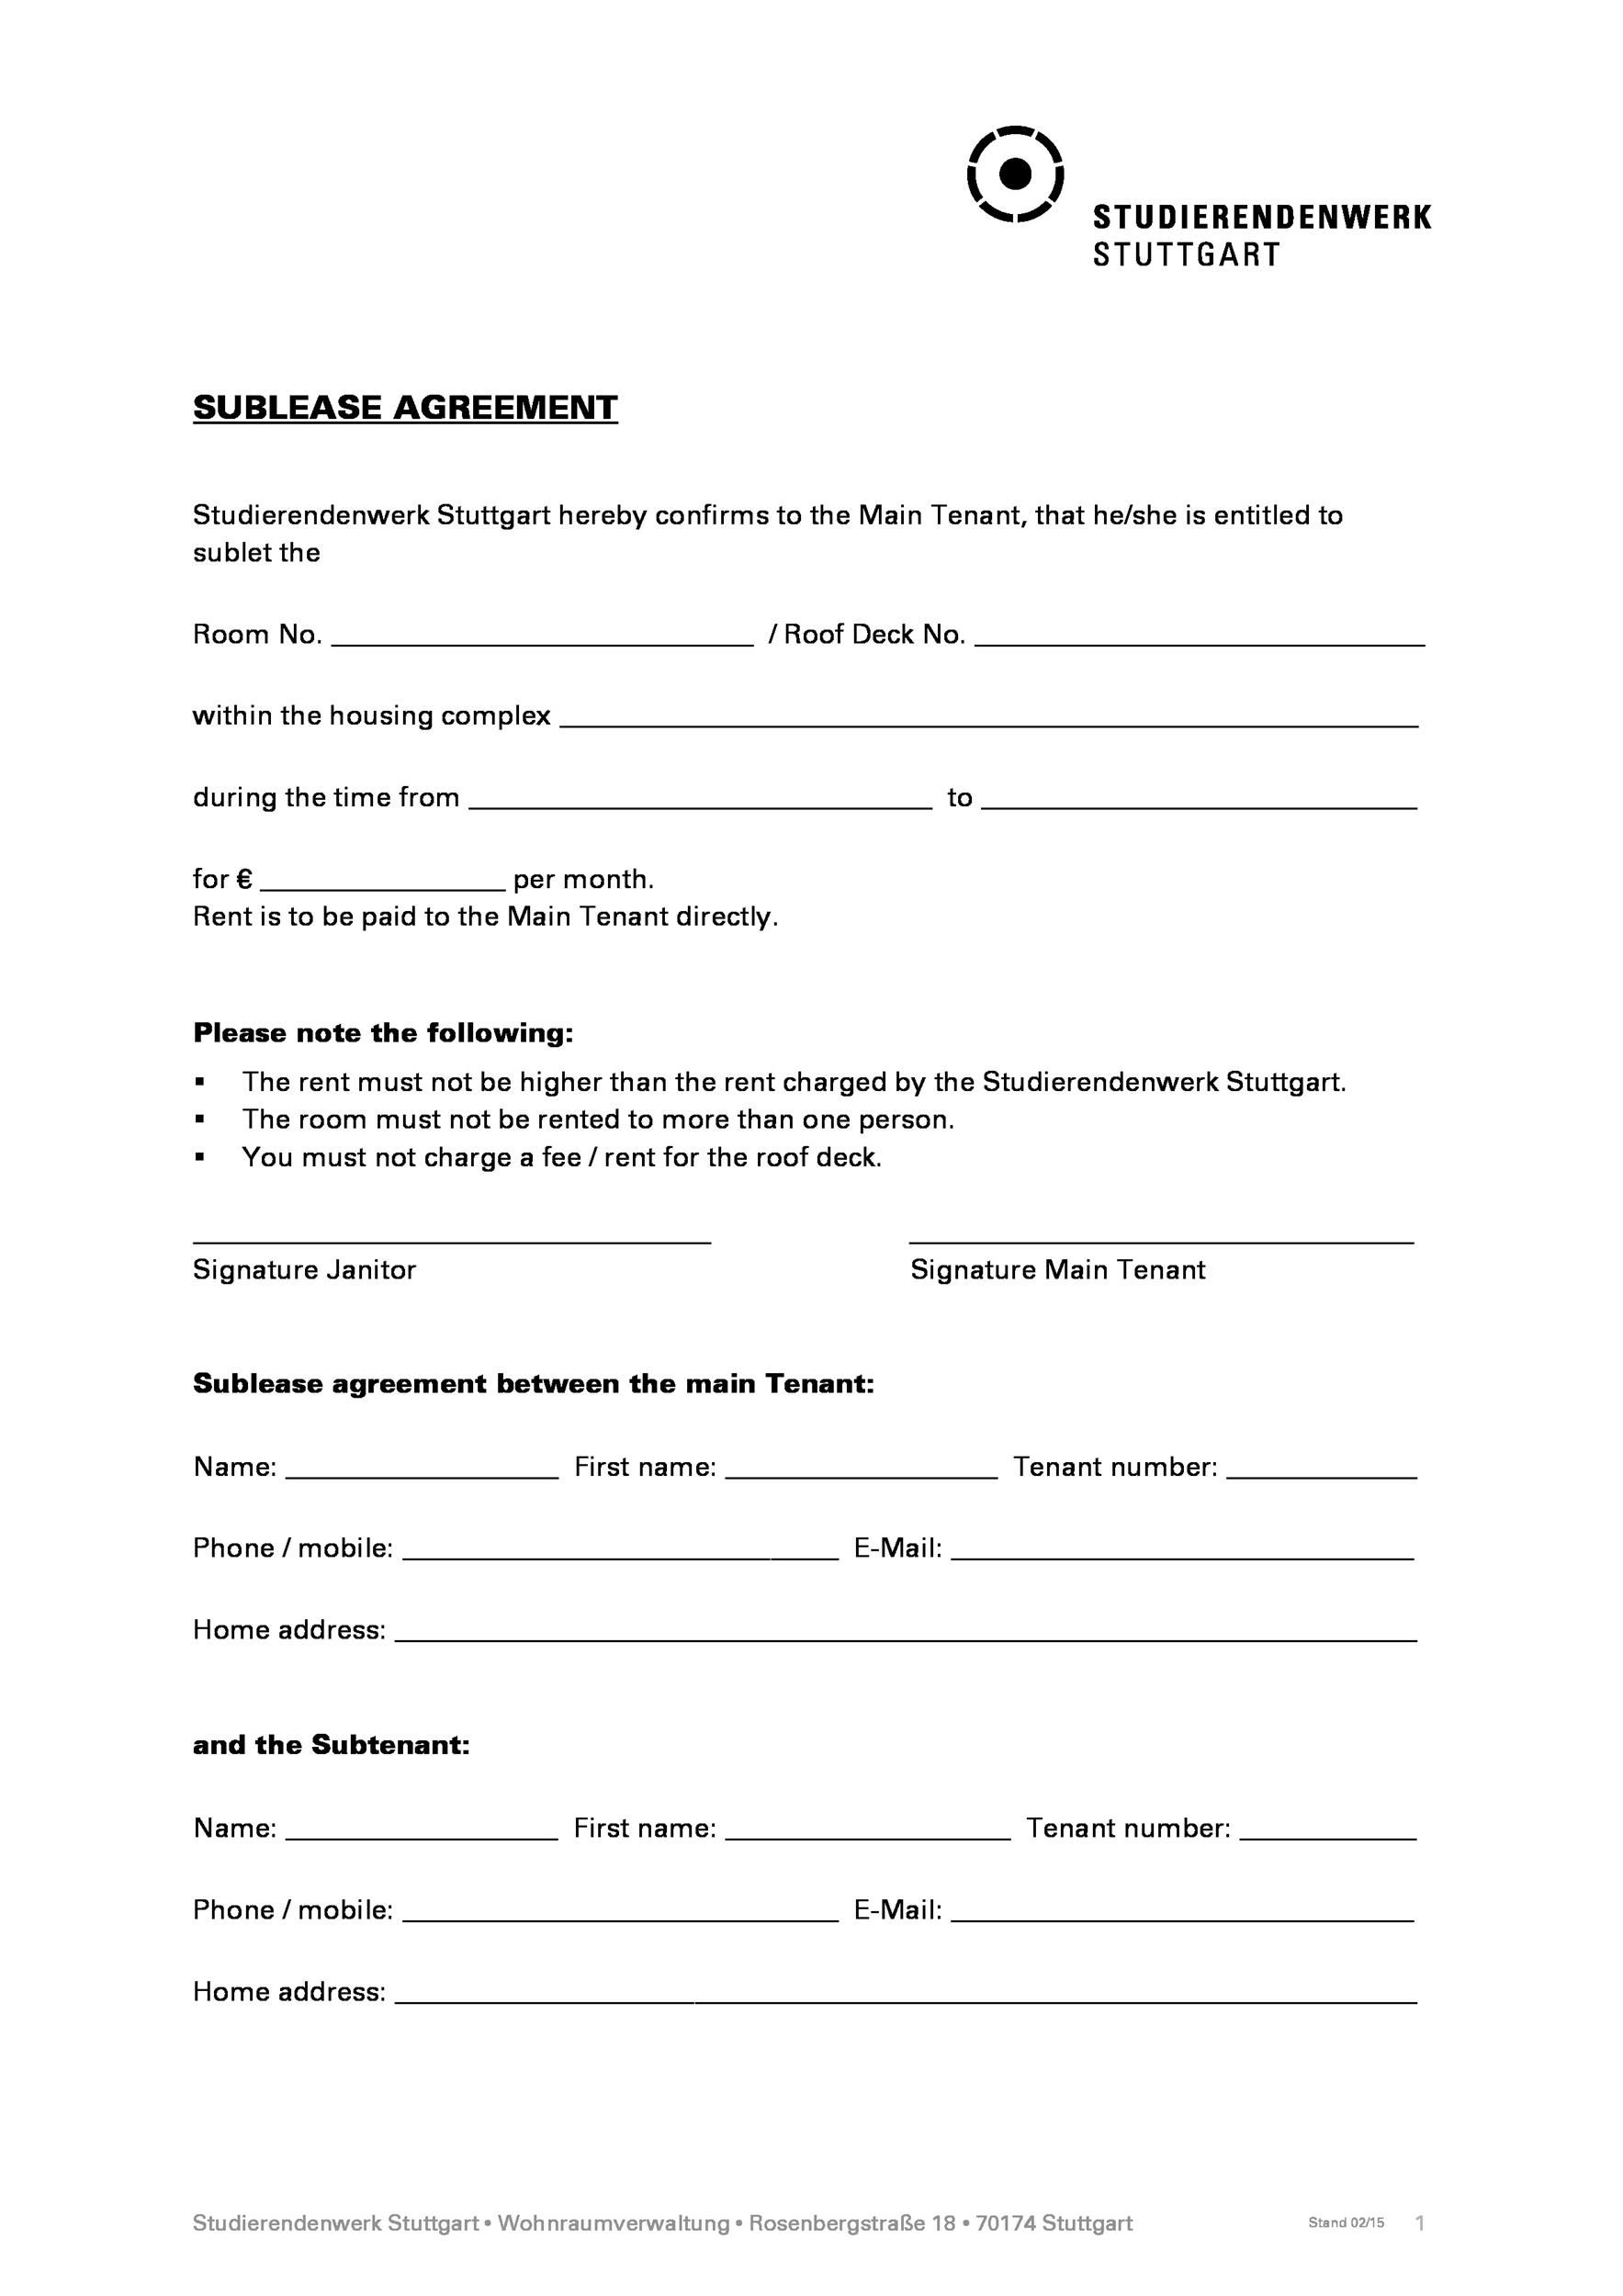 004 Astounding Free Sublease Agreement Template Pdf Inspiration  Room Rental Car Form Residential LeaseFull